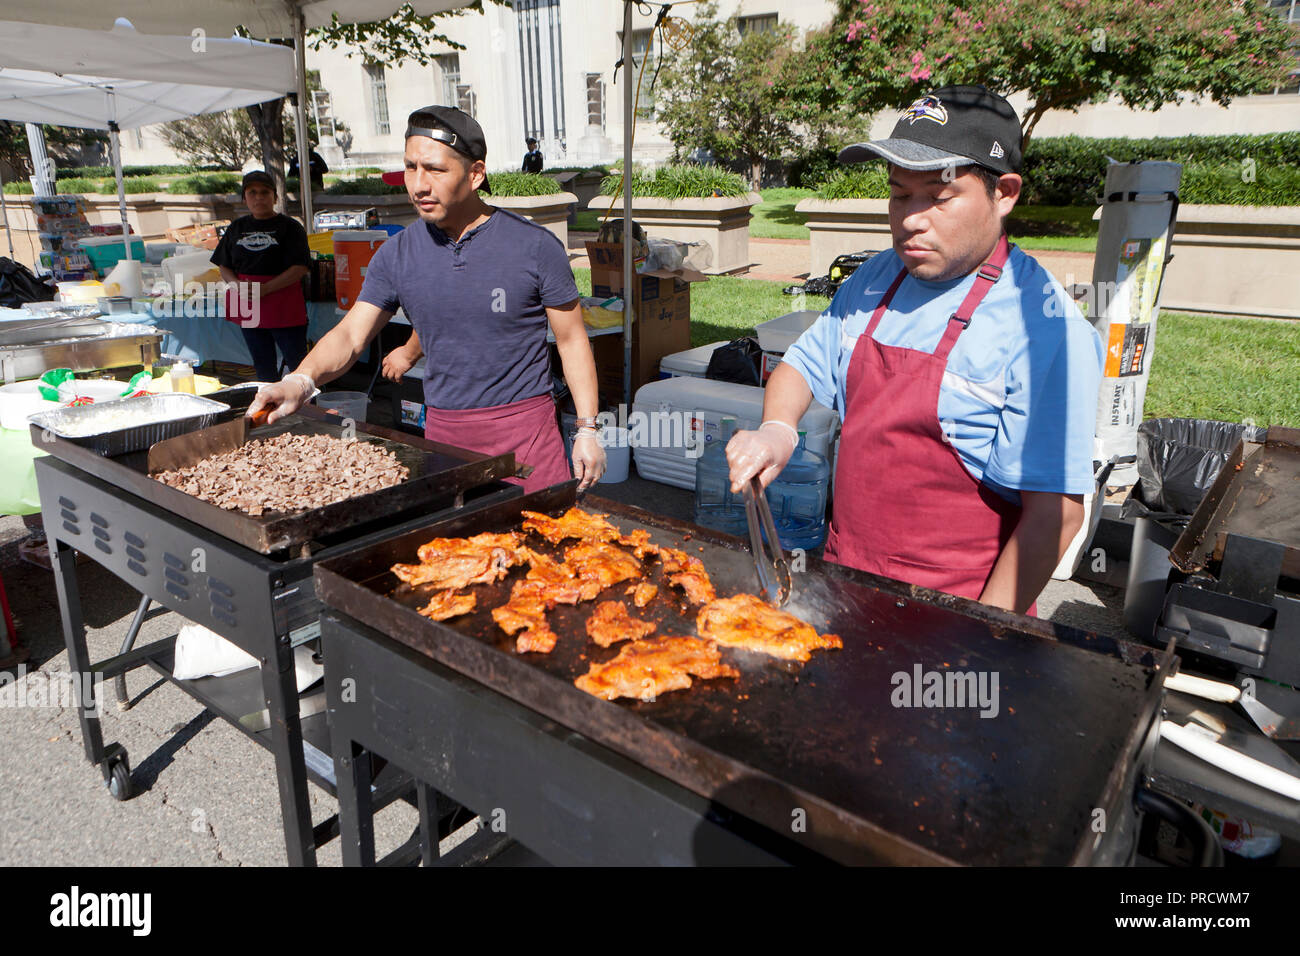 Hispanic cooks grilling meats at an outdoor festival - USA - Stock Image